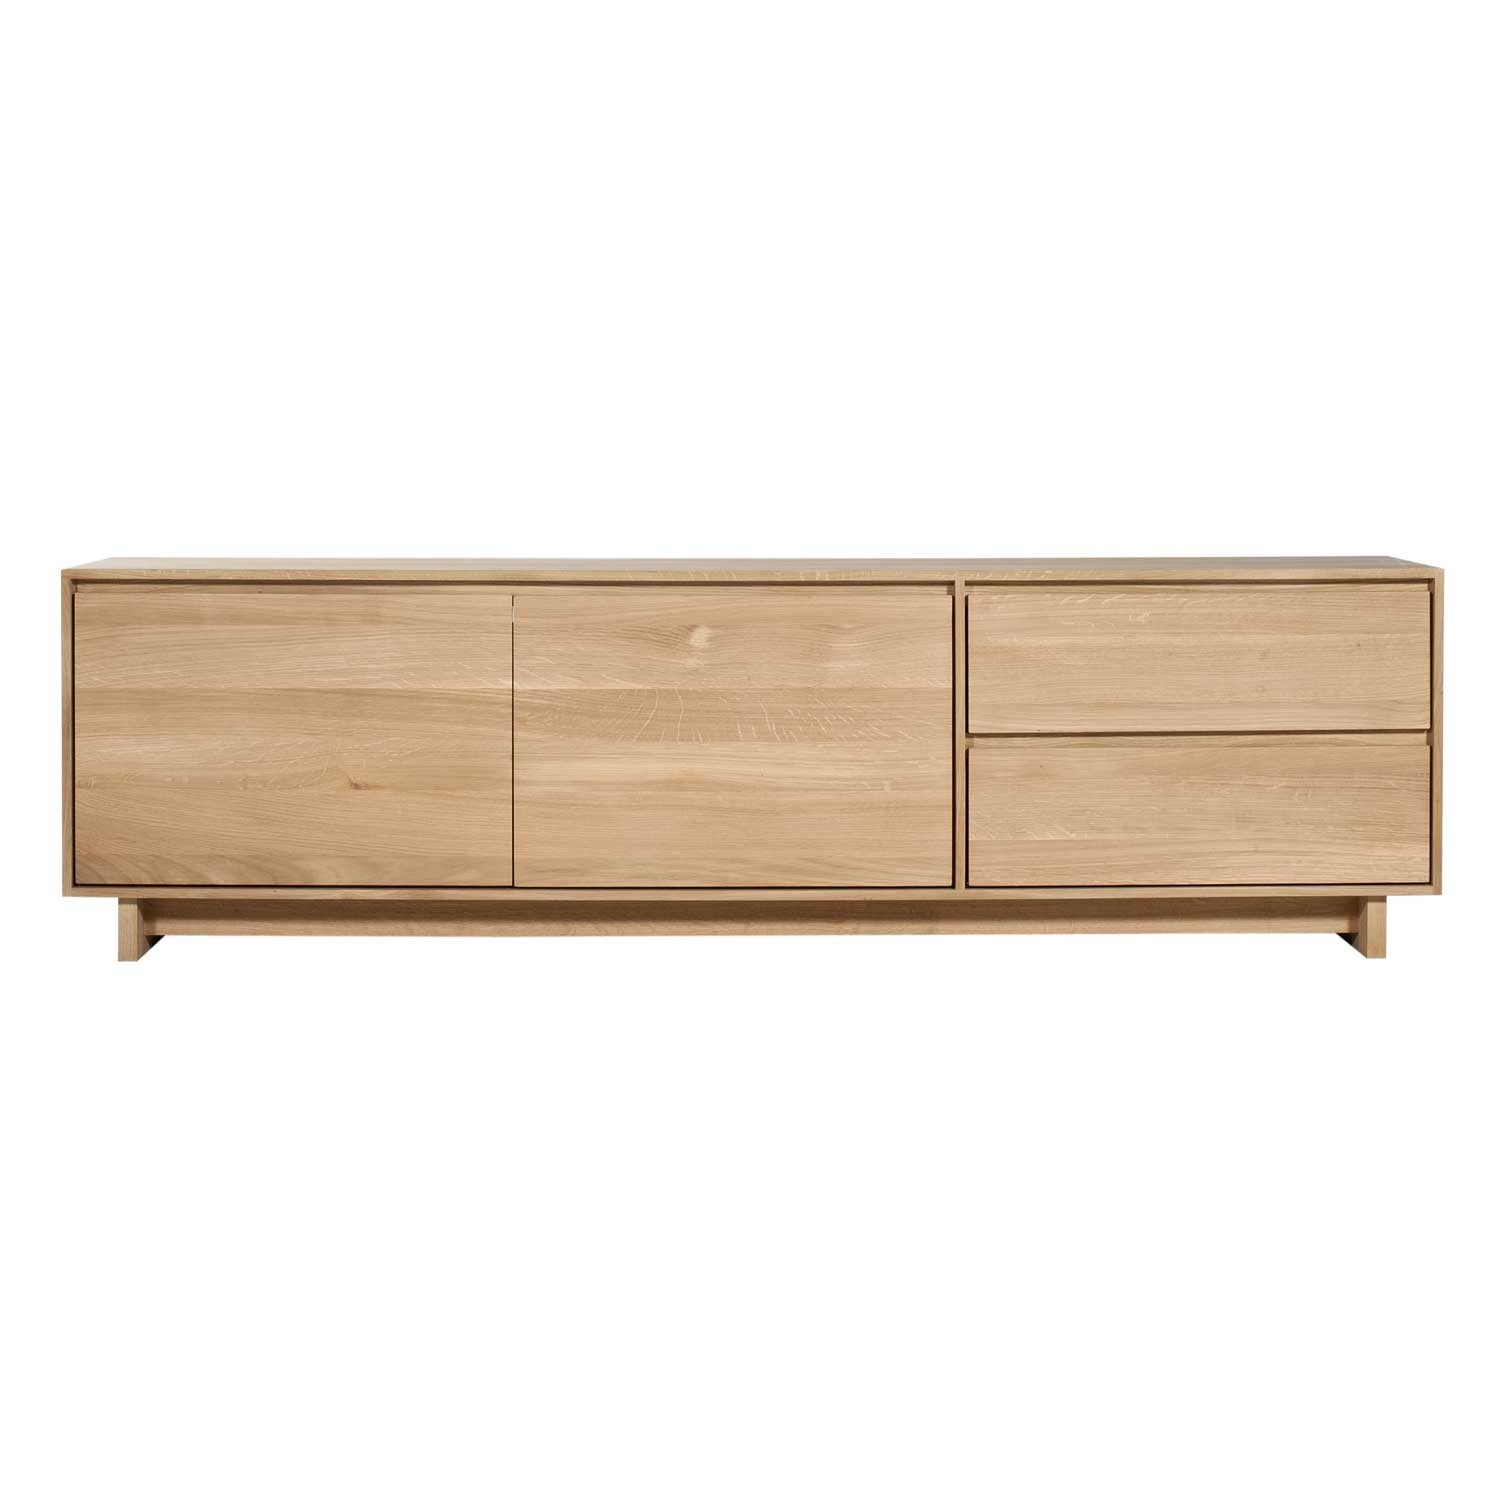 Ethnicraft Oak Wave TV cupboard - 210cm